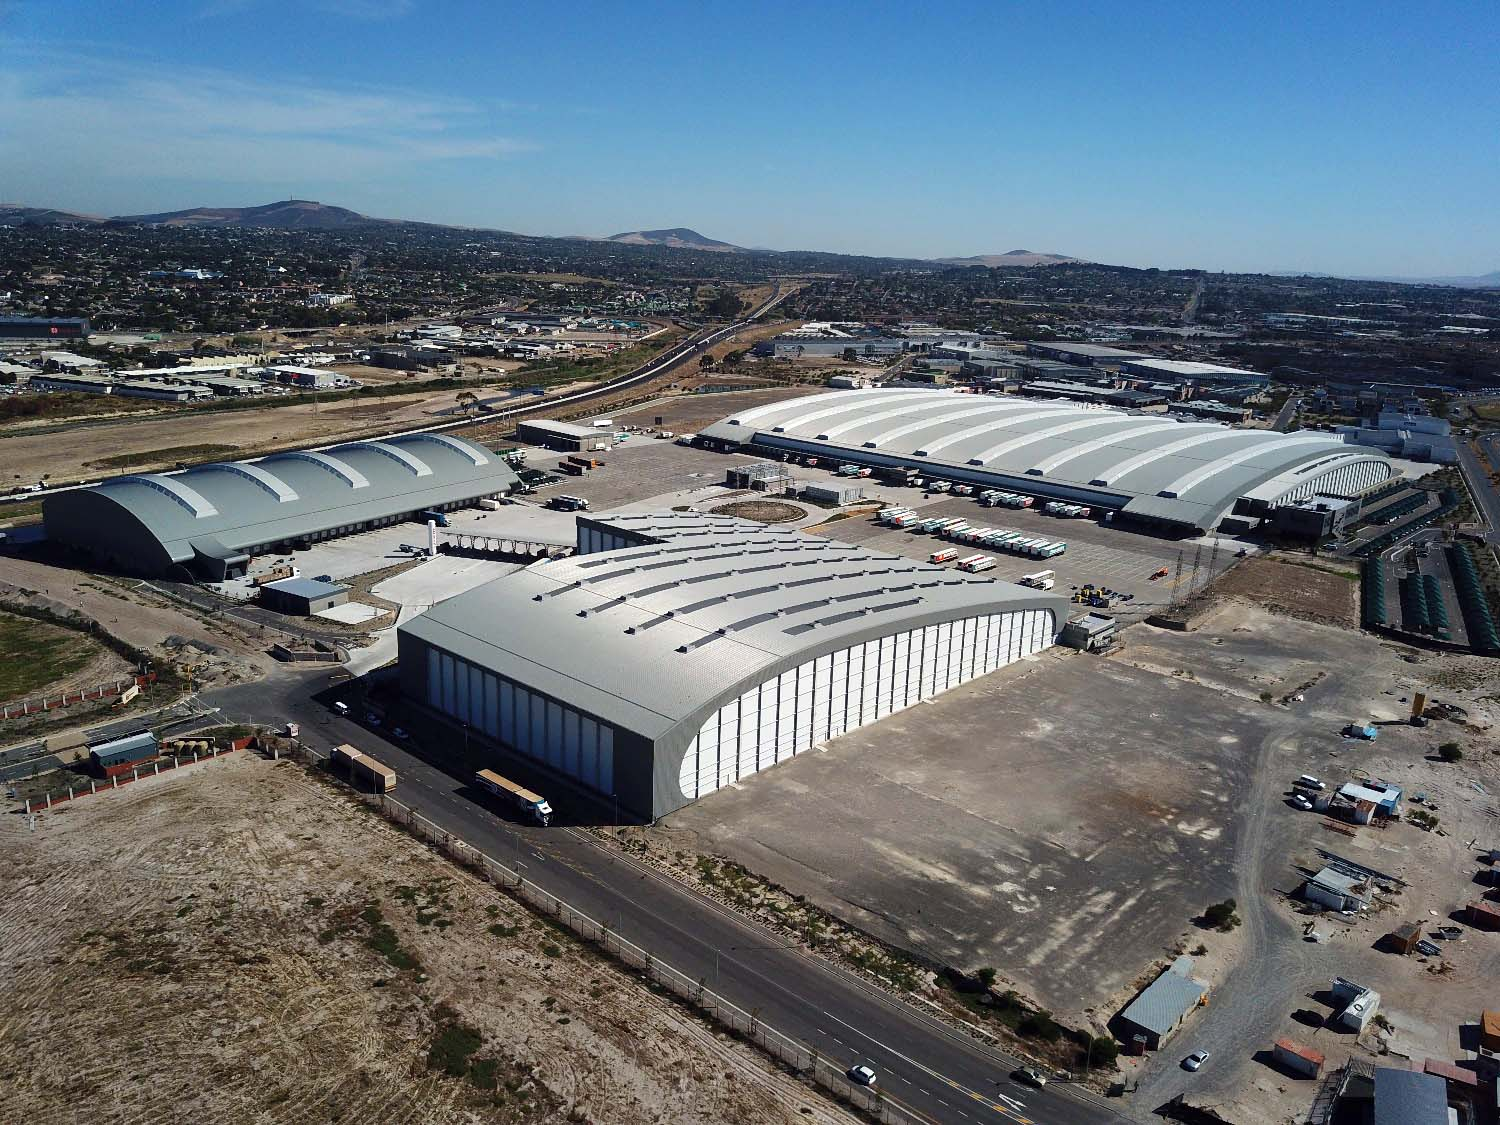 Shoprite Climor Distribution Centre roofed in Klip-Tite steel sheeting